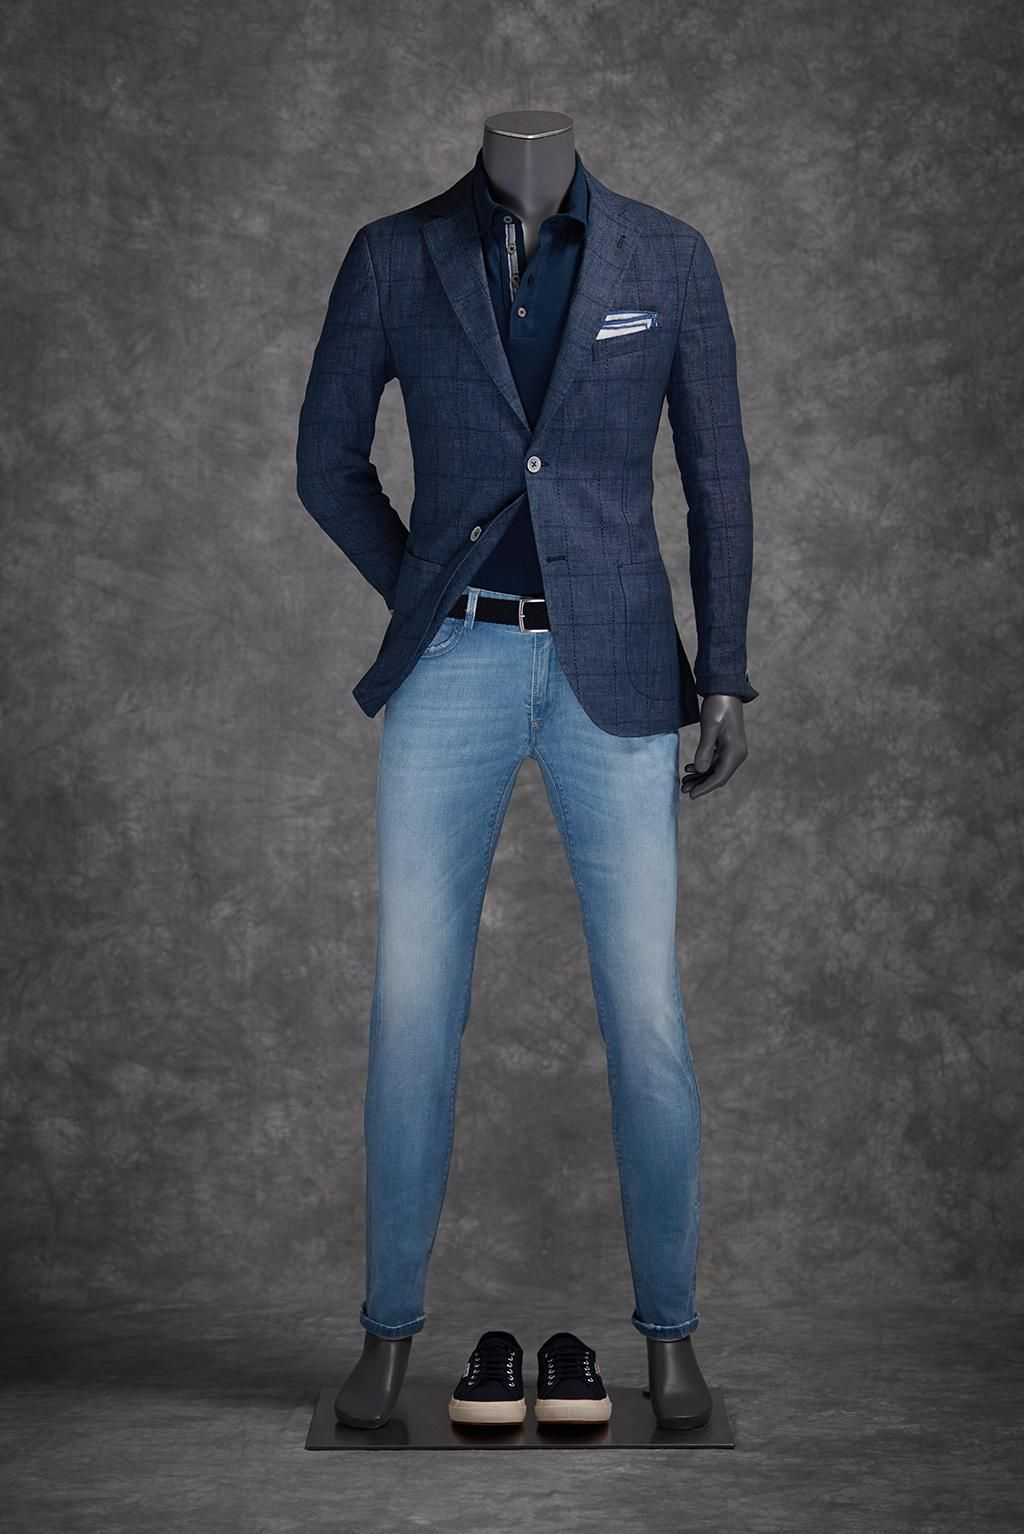 the society shop outfits hombres pinterest shopping